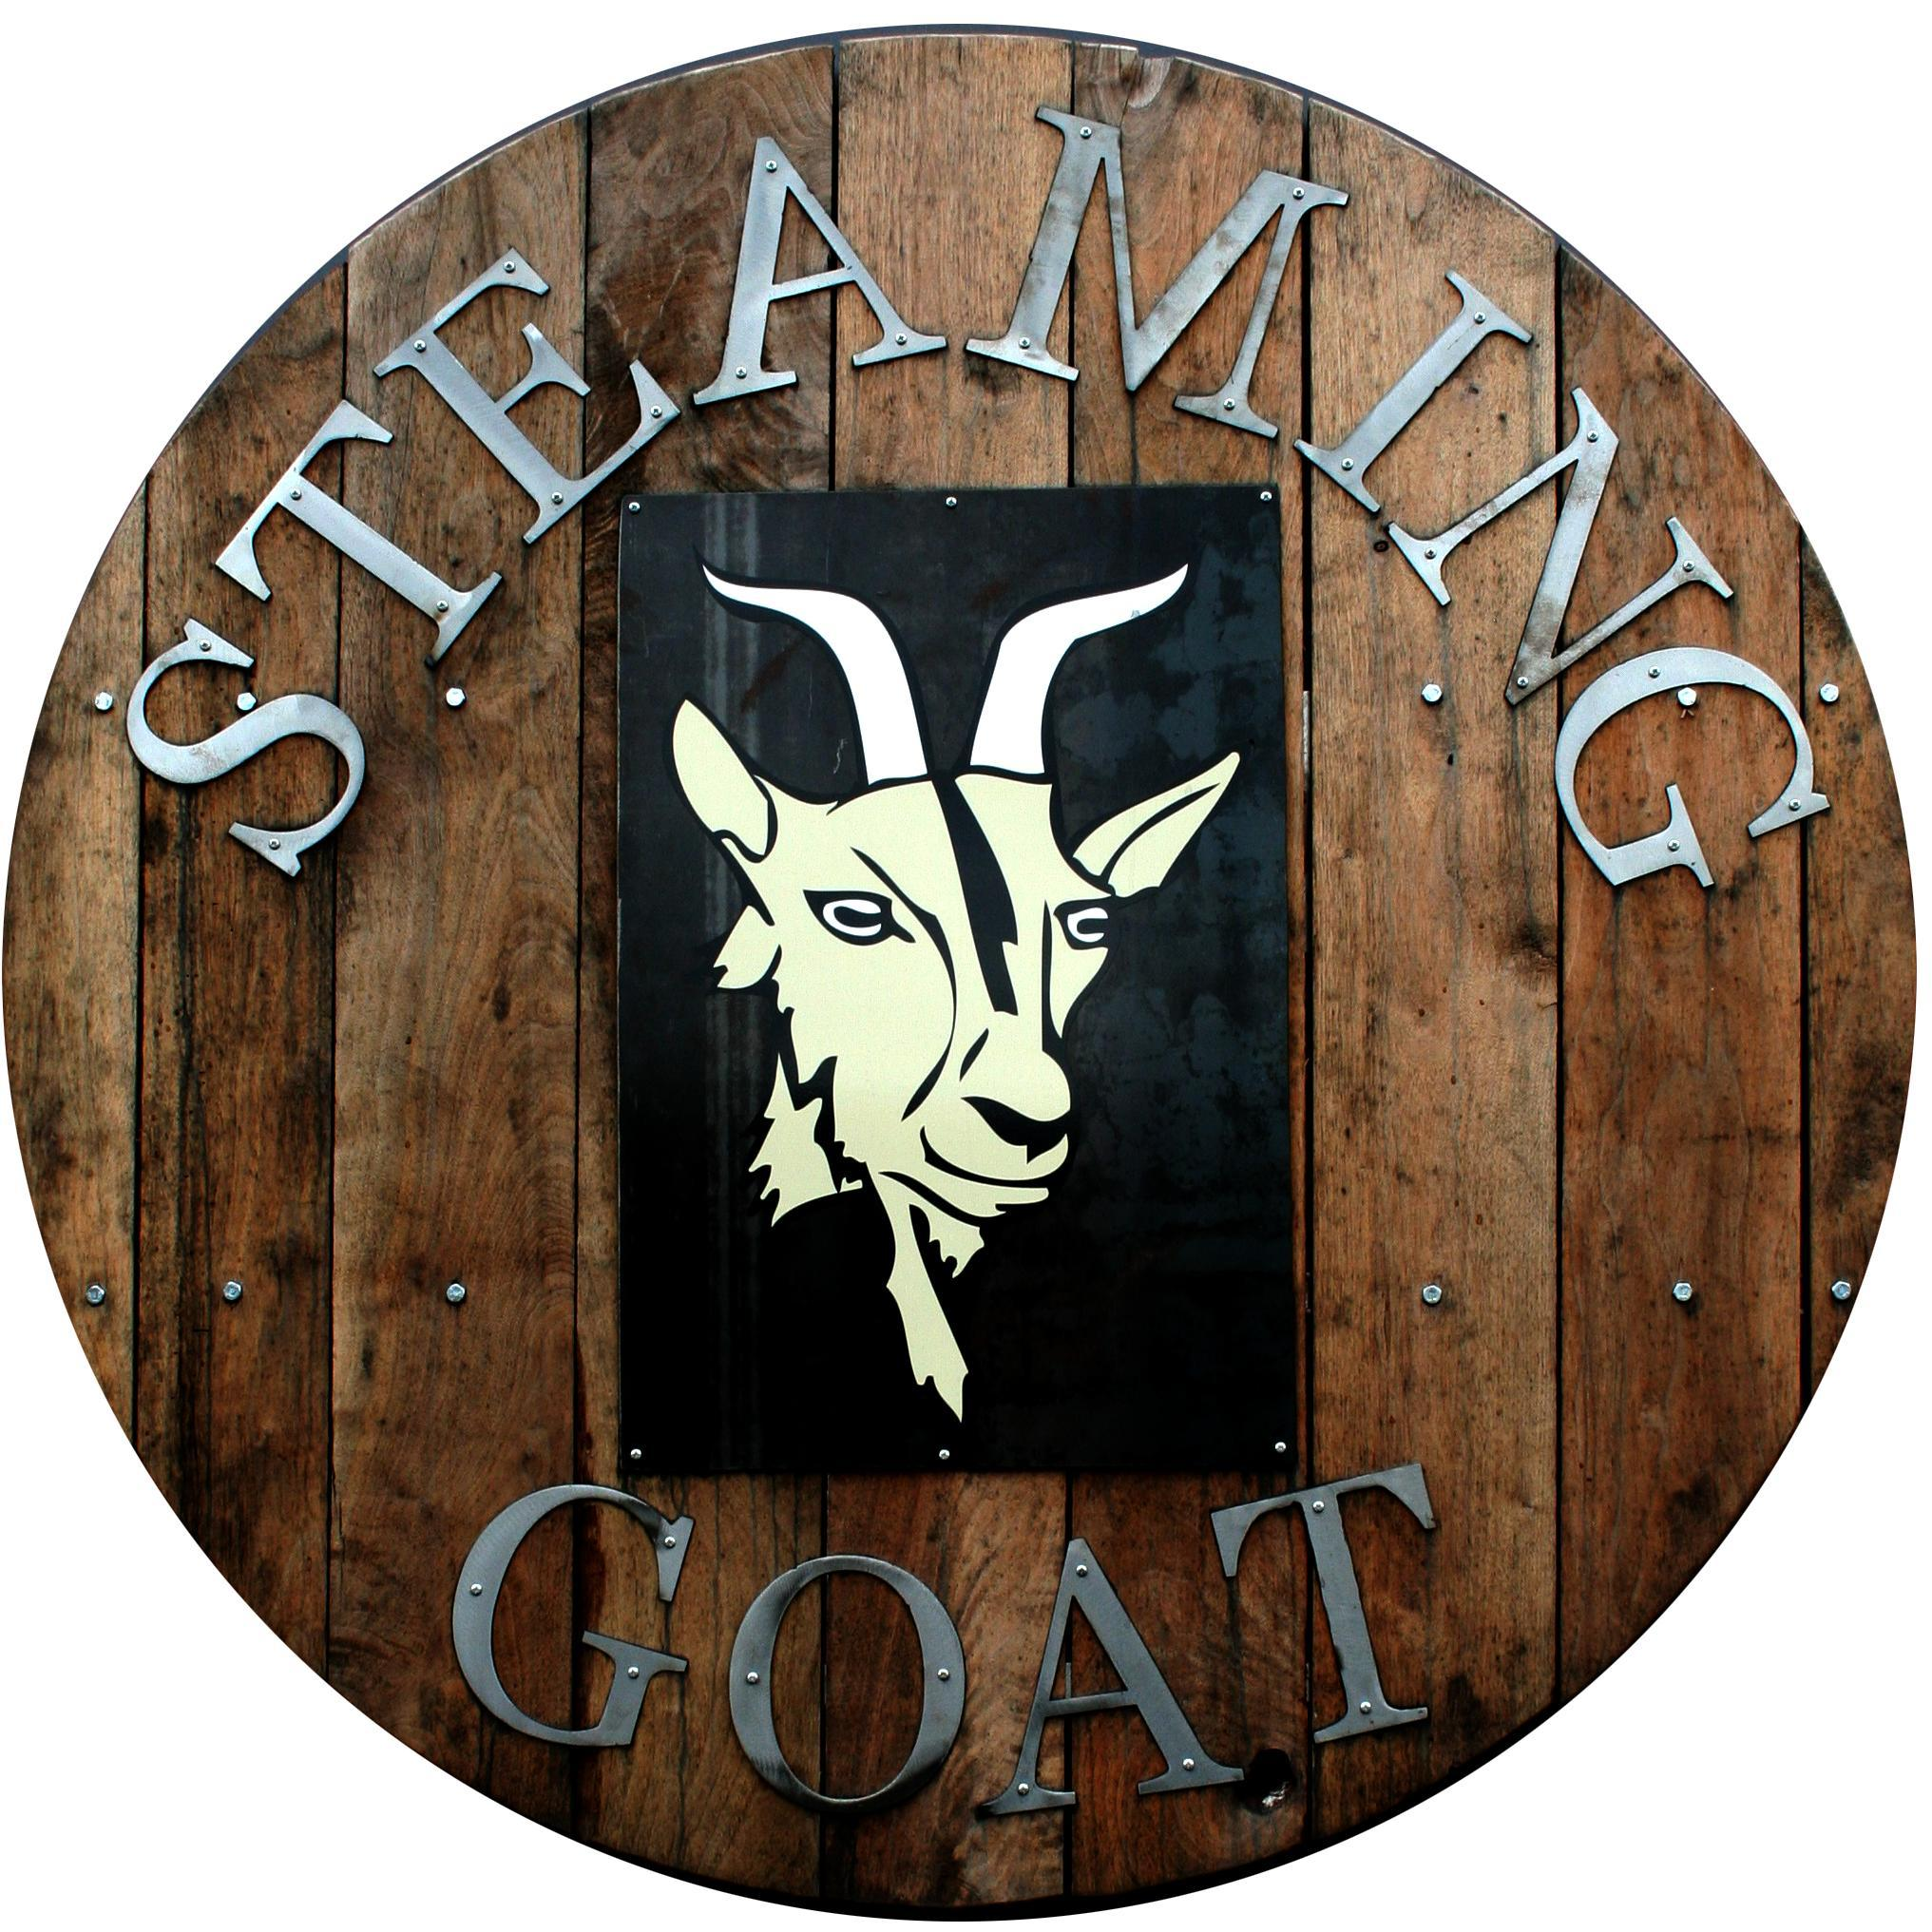 Steaming Goat On Twitter Theres A Great Day Ahead Tomorrow Catch